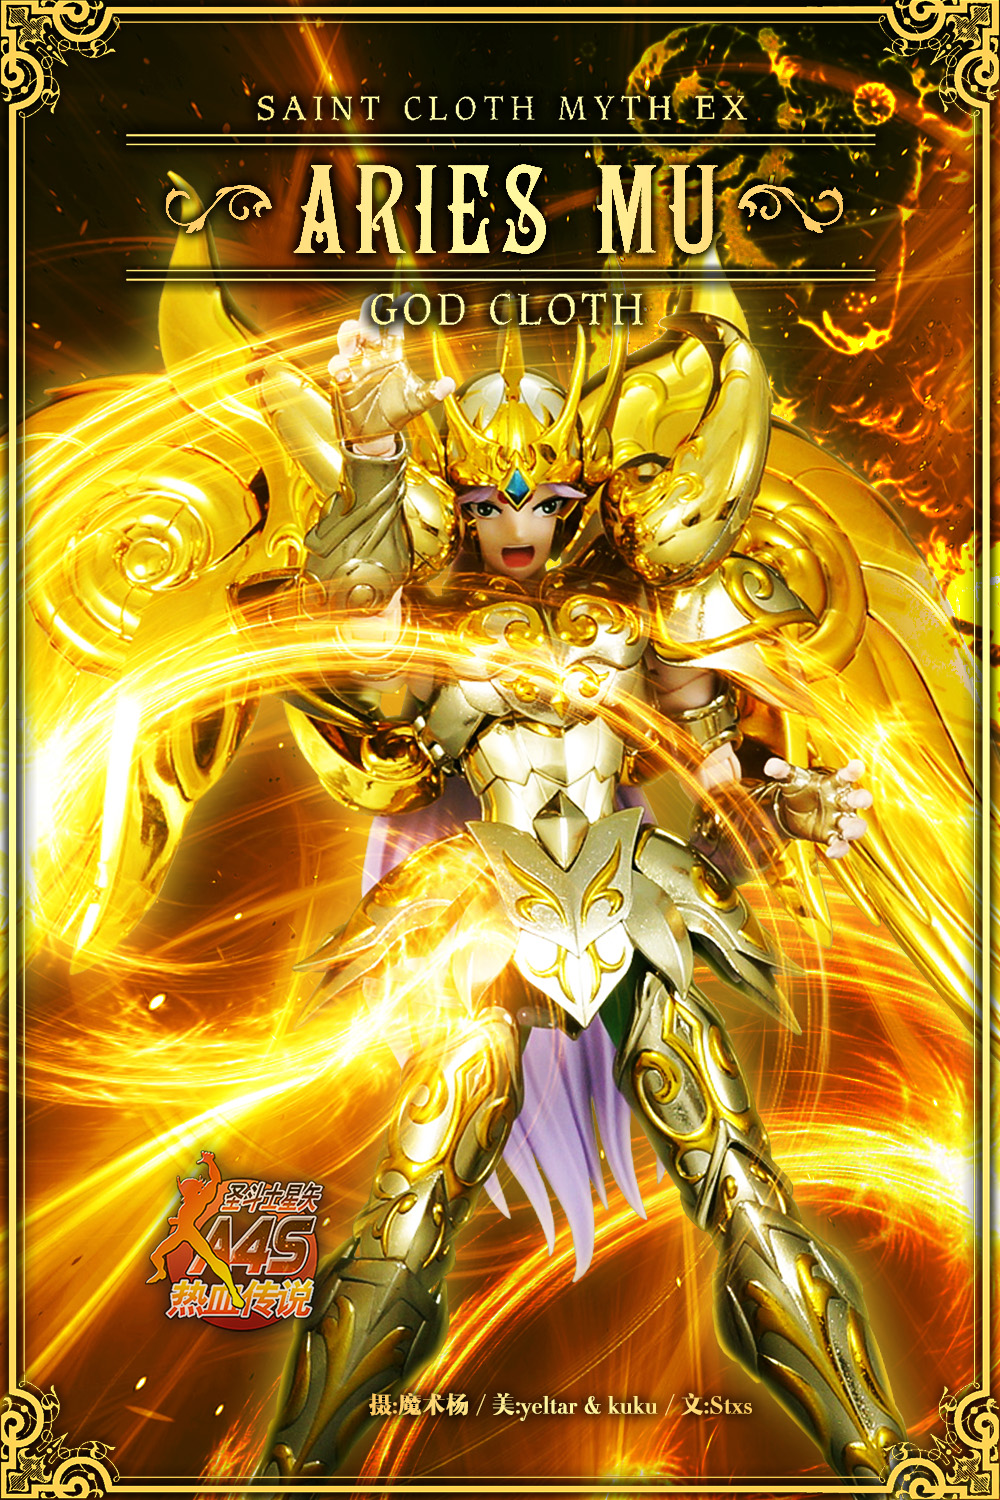 Saint-Seiya-Soul-of-Gold-Myth-Cloth-EX-Aries-Armadura-divina-01